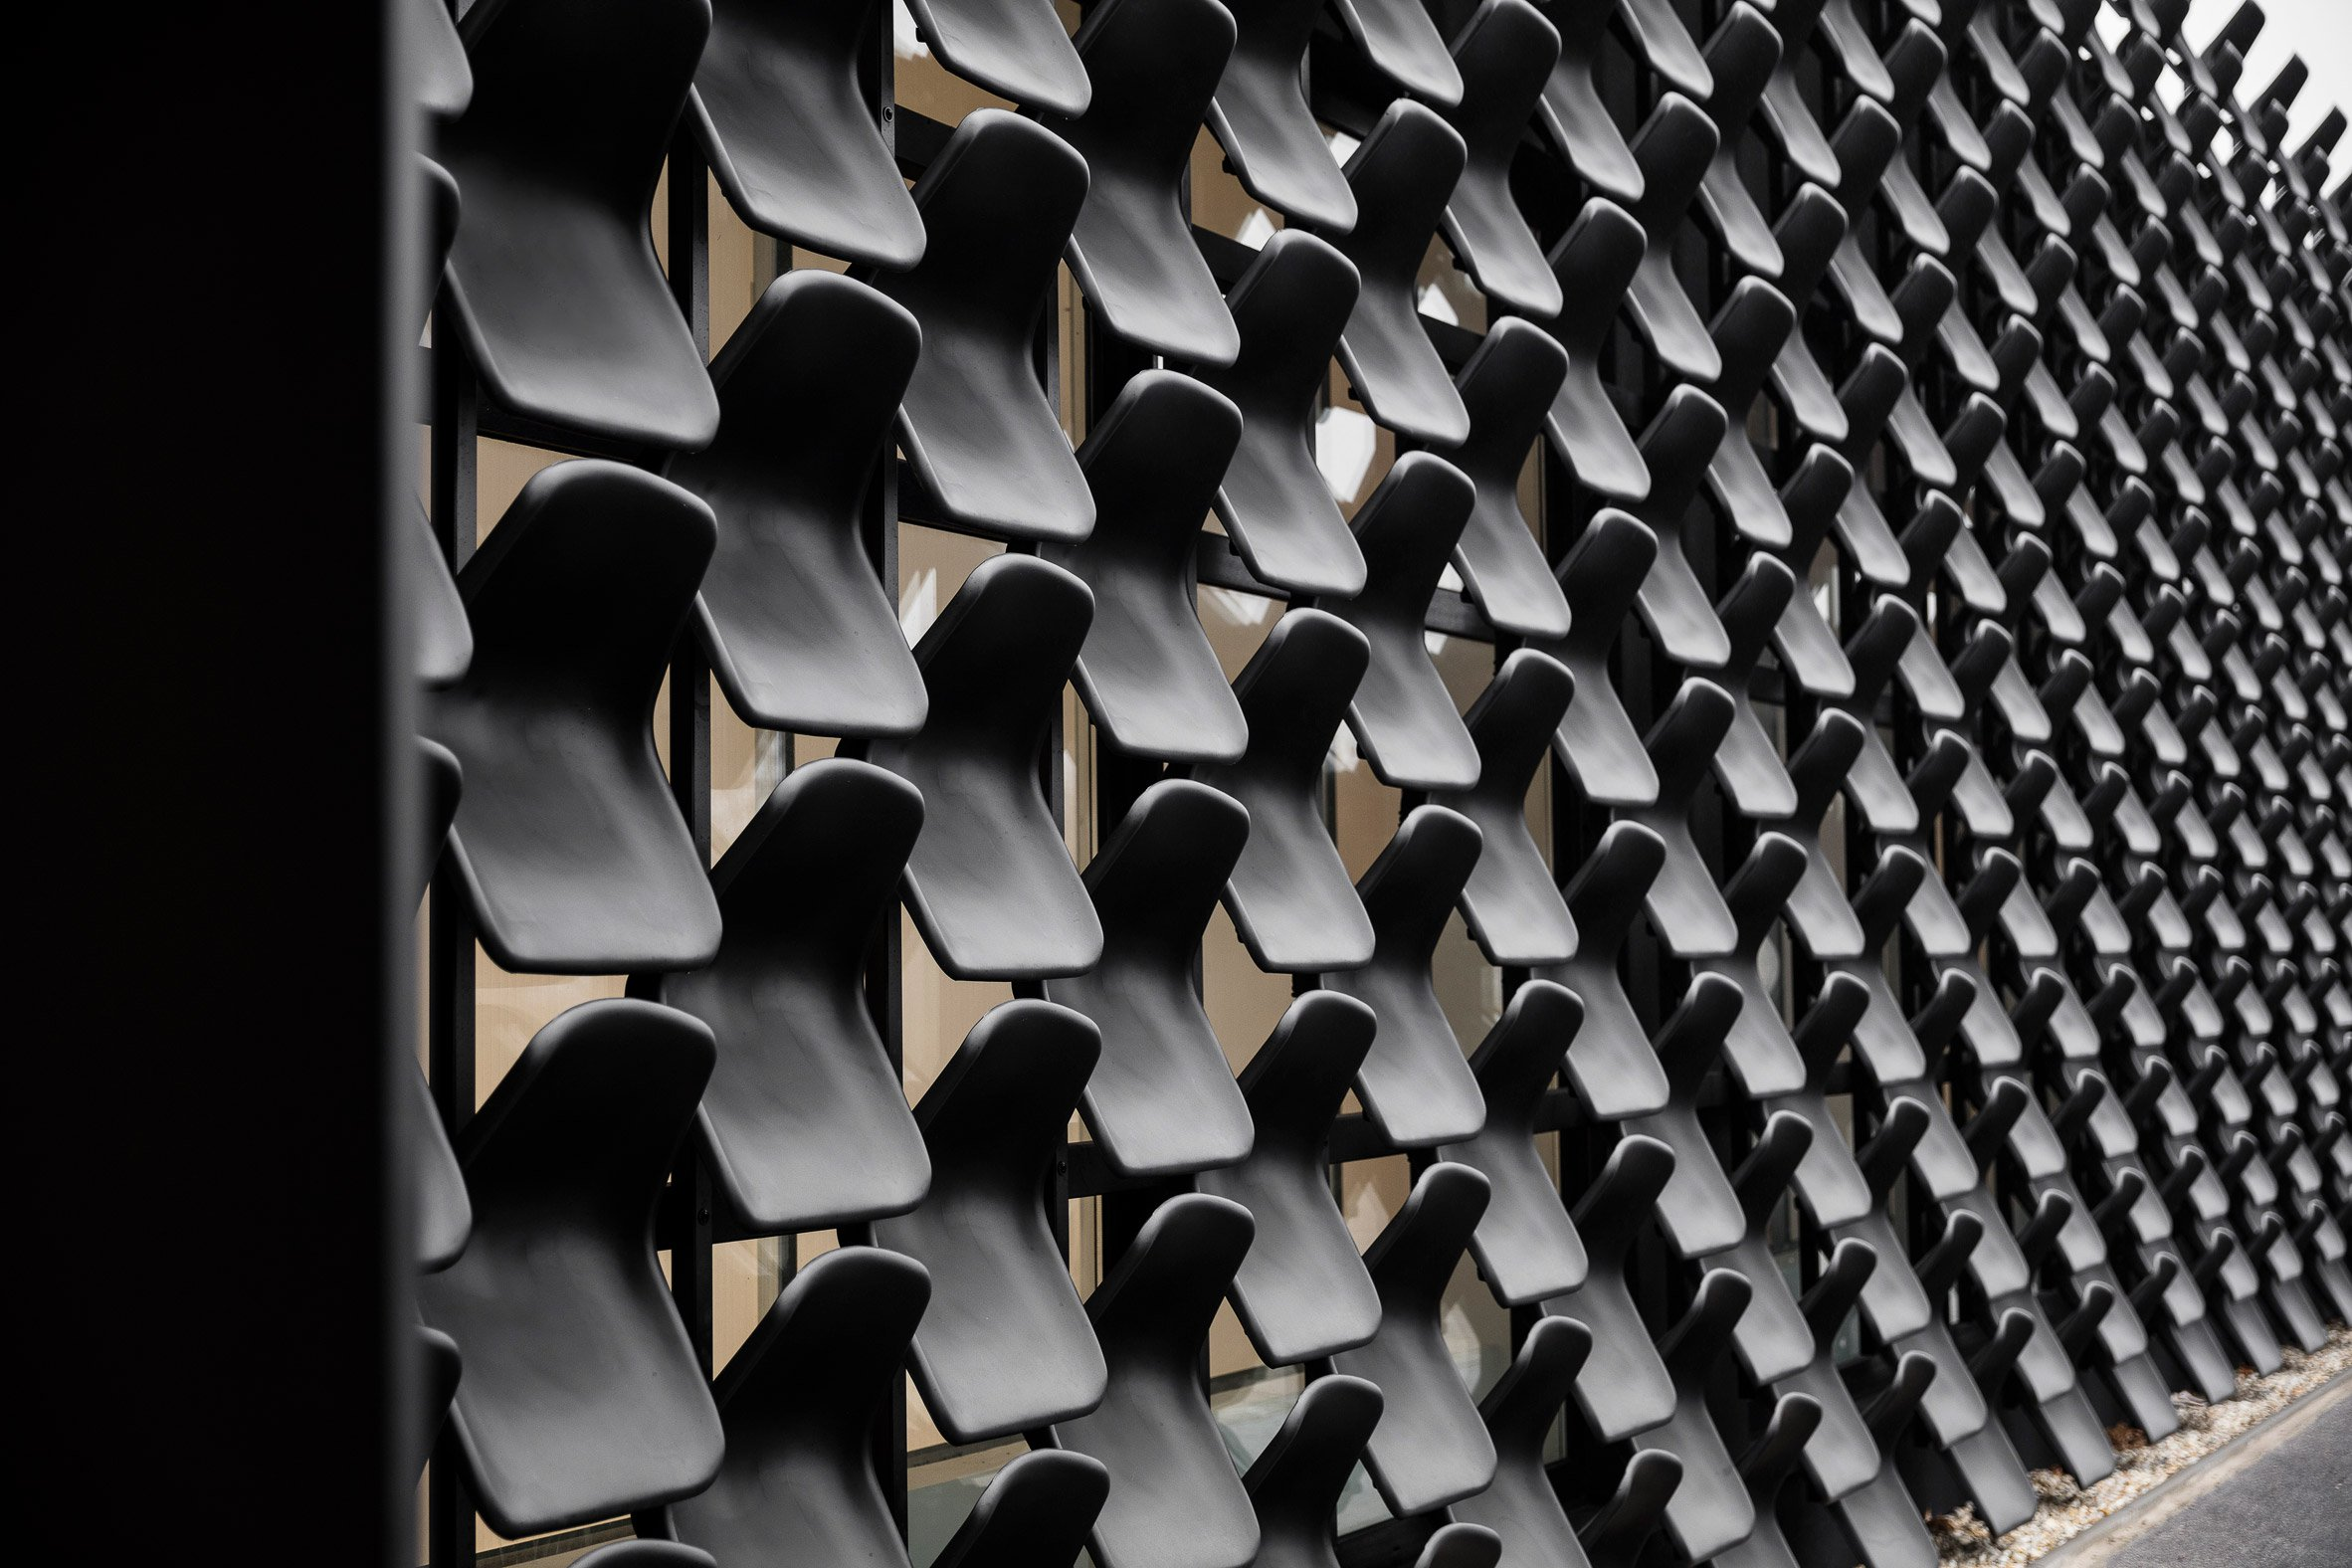 Chybik + Kristof uses 900 plastic chairs to clad Czech furniture showroom